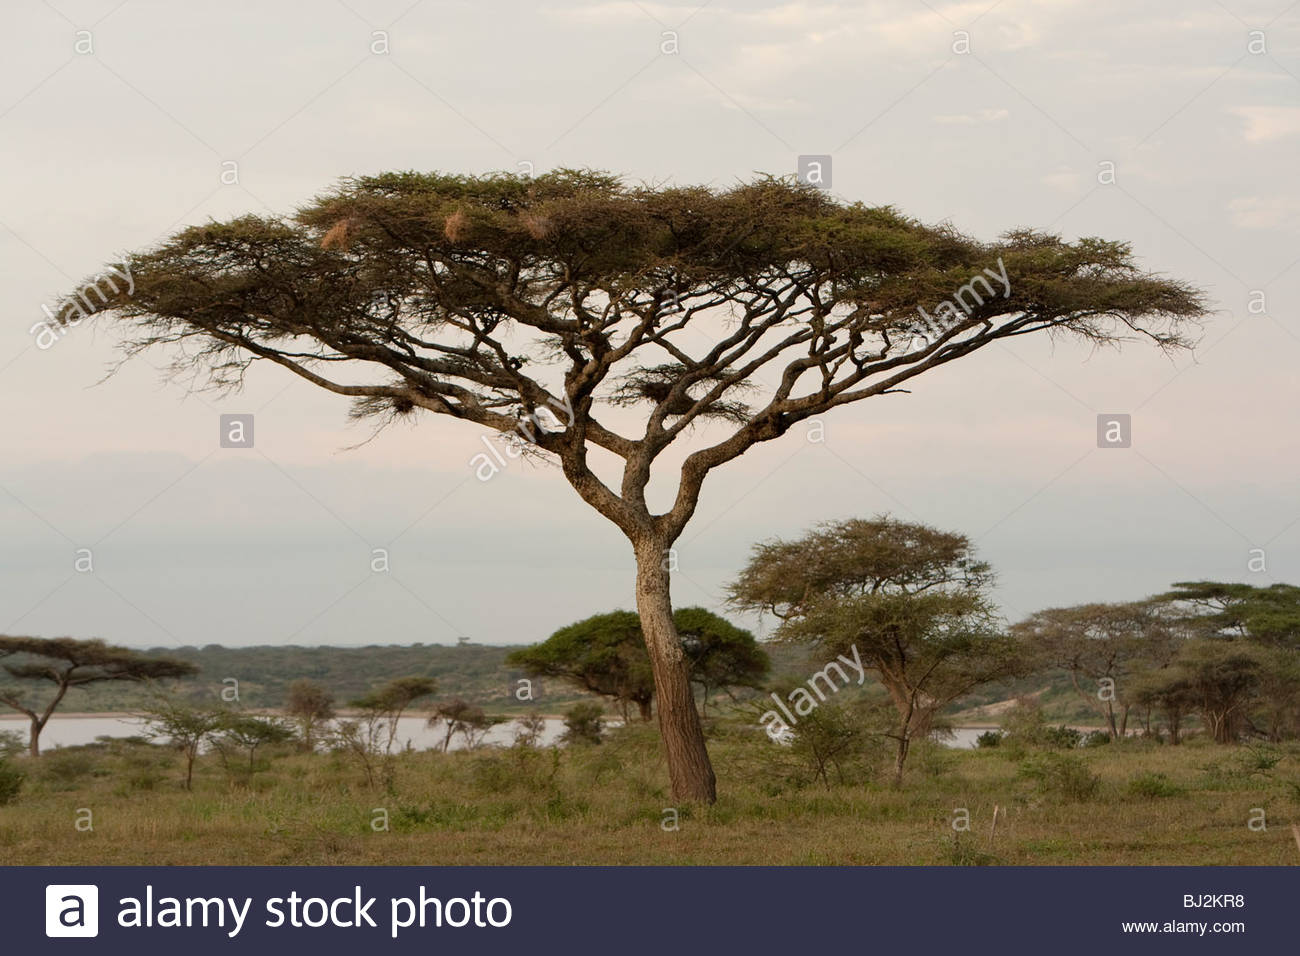 An Umbrella Thorn Acacia Tortilis Tree At Lake Ndutu Serengeti